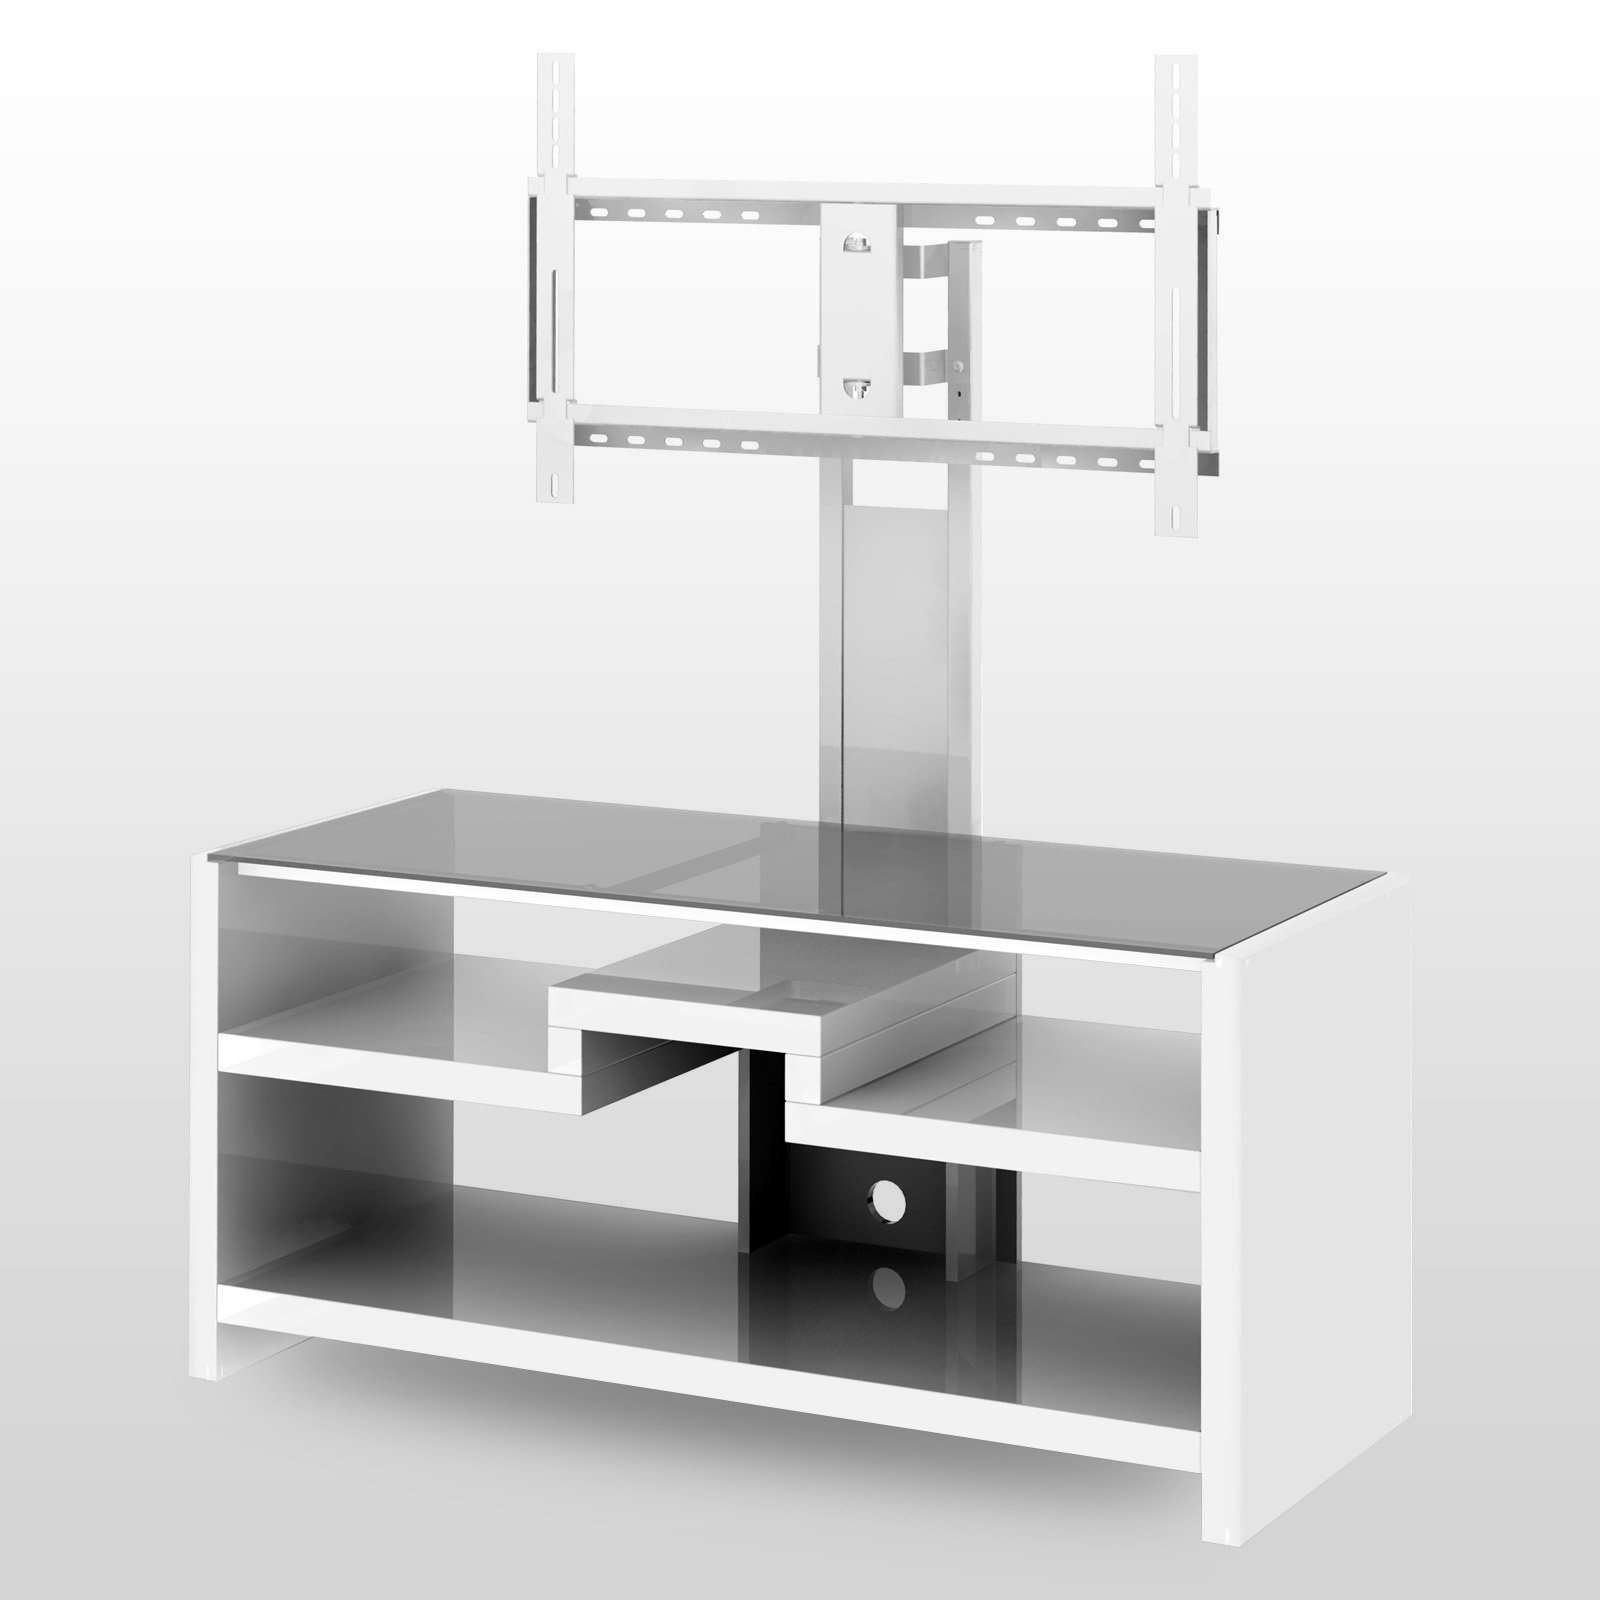 Tv Stands Furnitureallv Stand With Mount Wall Mounted Shelf Tall With Cheap Tall Tv Stands For Flat Screens (View 14 of 20)